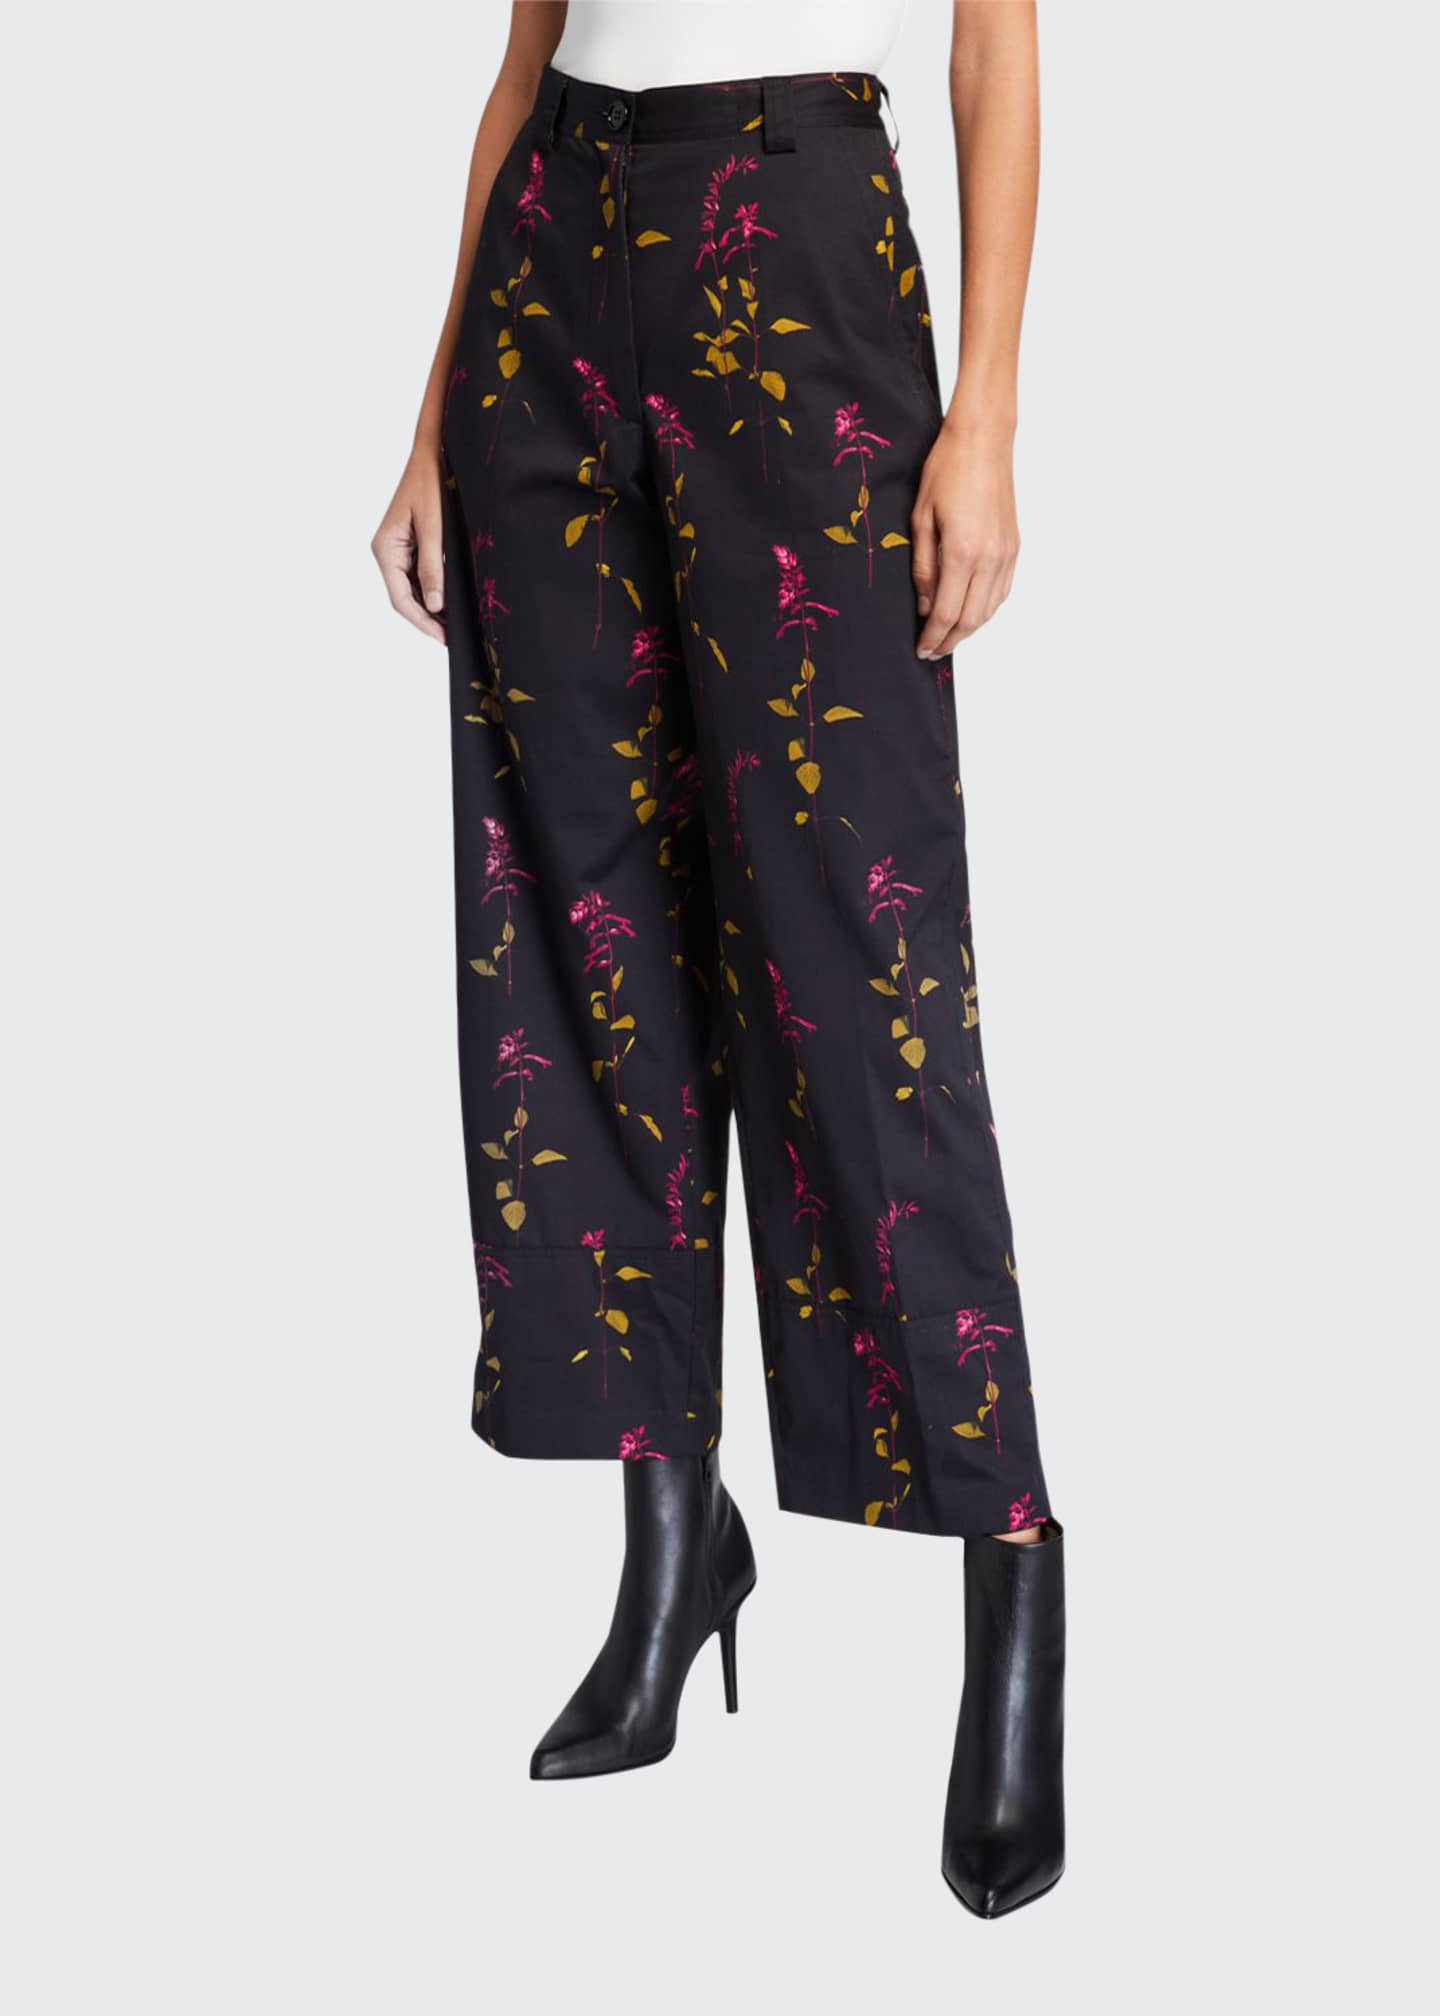 Dries Van Noten Floral-Print Cropped Pants